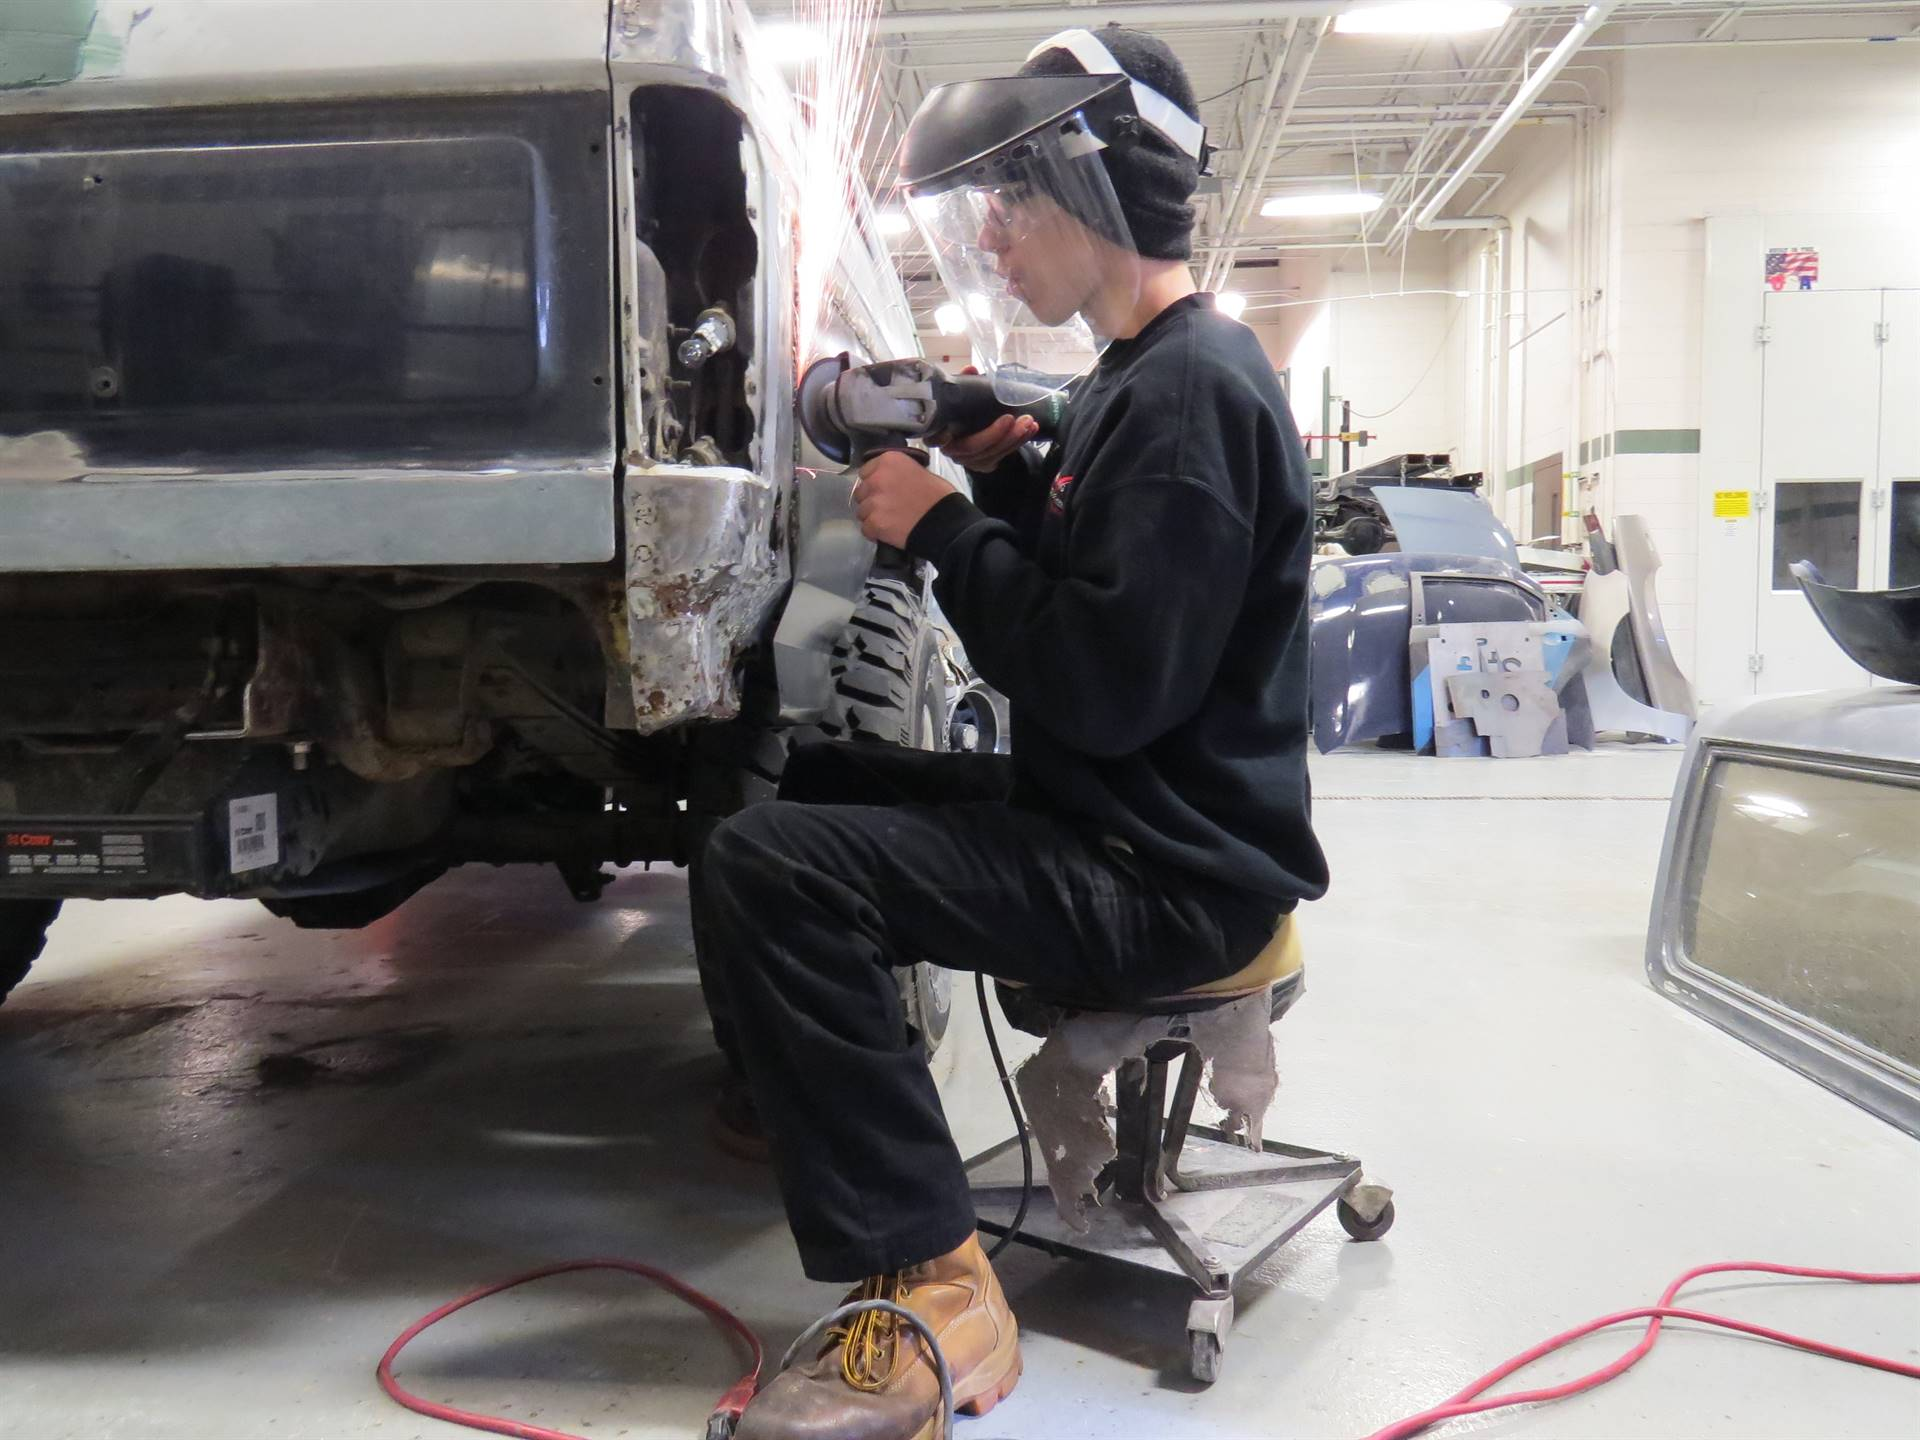 Auto Body Repair student is using a grinding tool to smooth the surface of a vehicle.